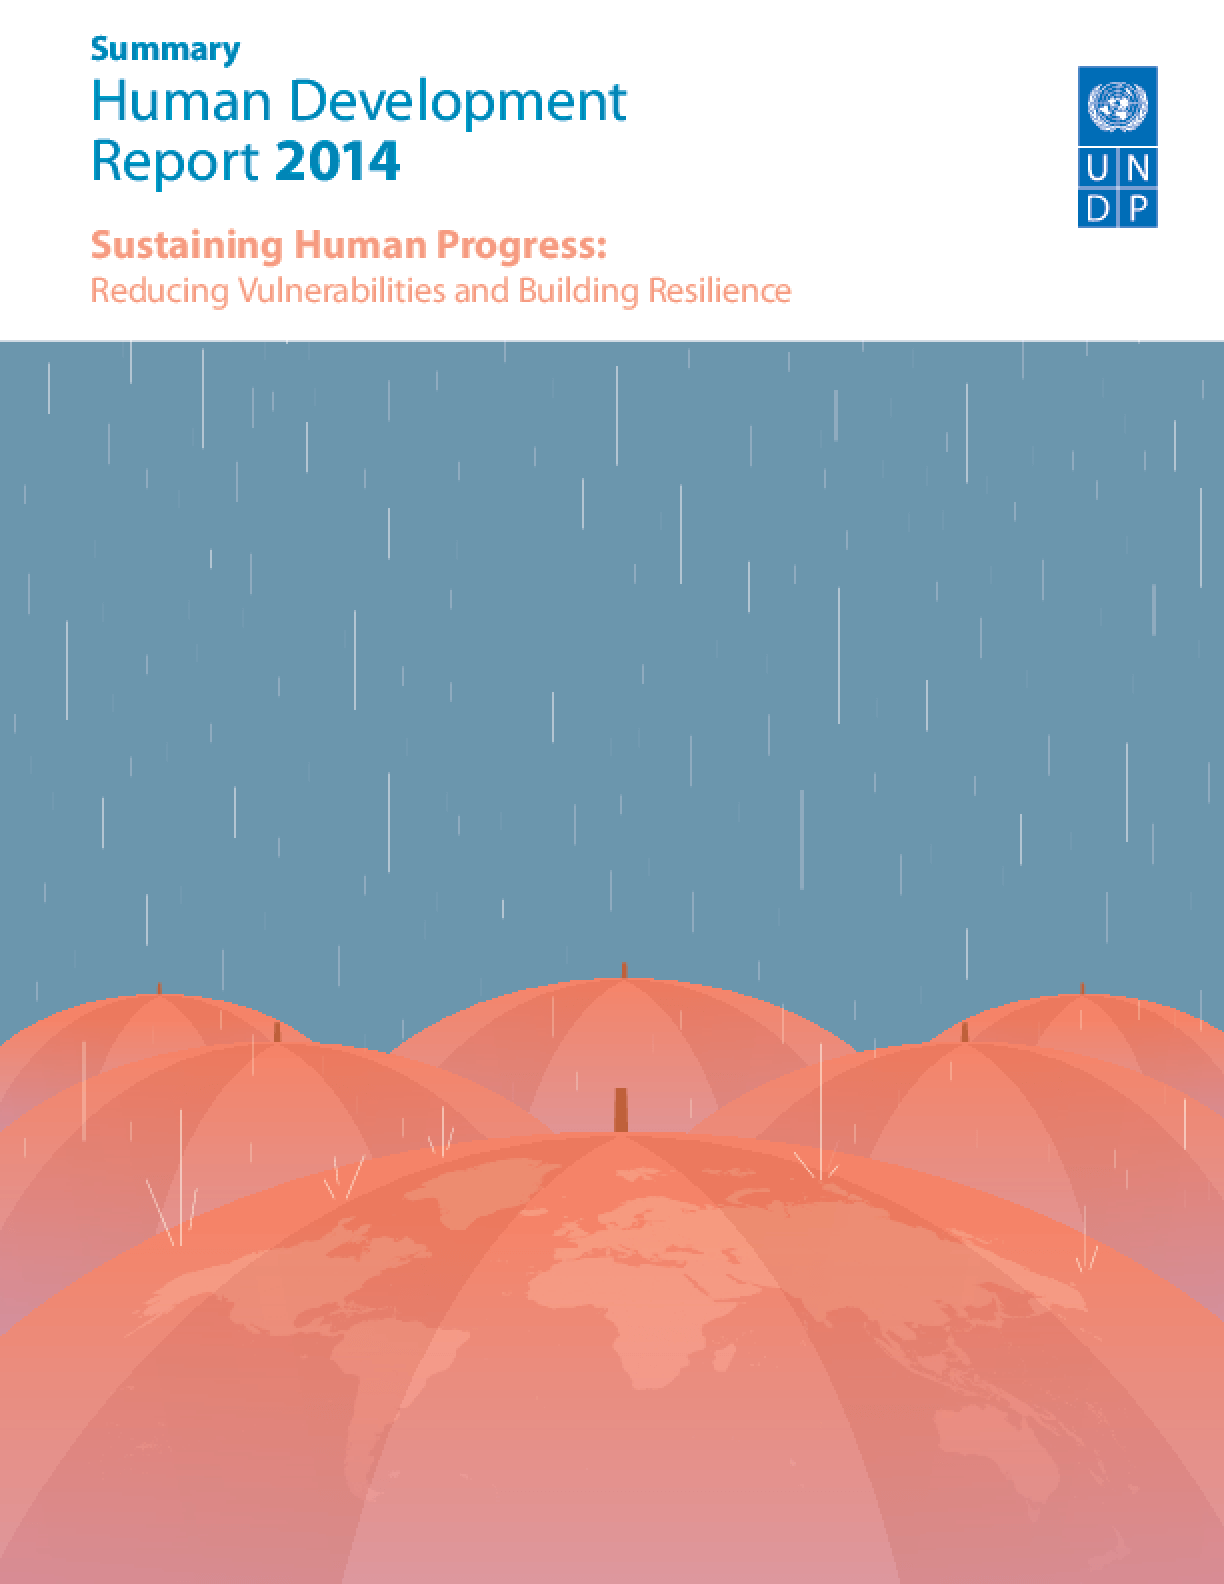 Sustaining Human Progress: Reducing Vulnerabilities and Building Resilience - Human Development Report 2014 (Summary)